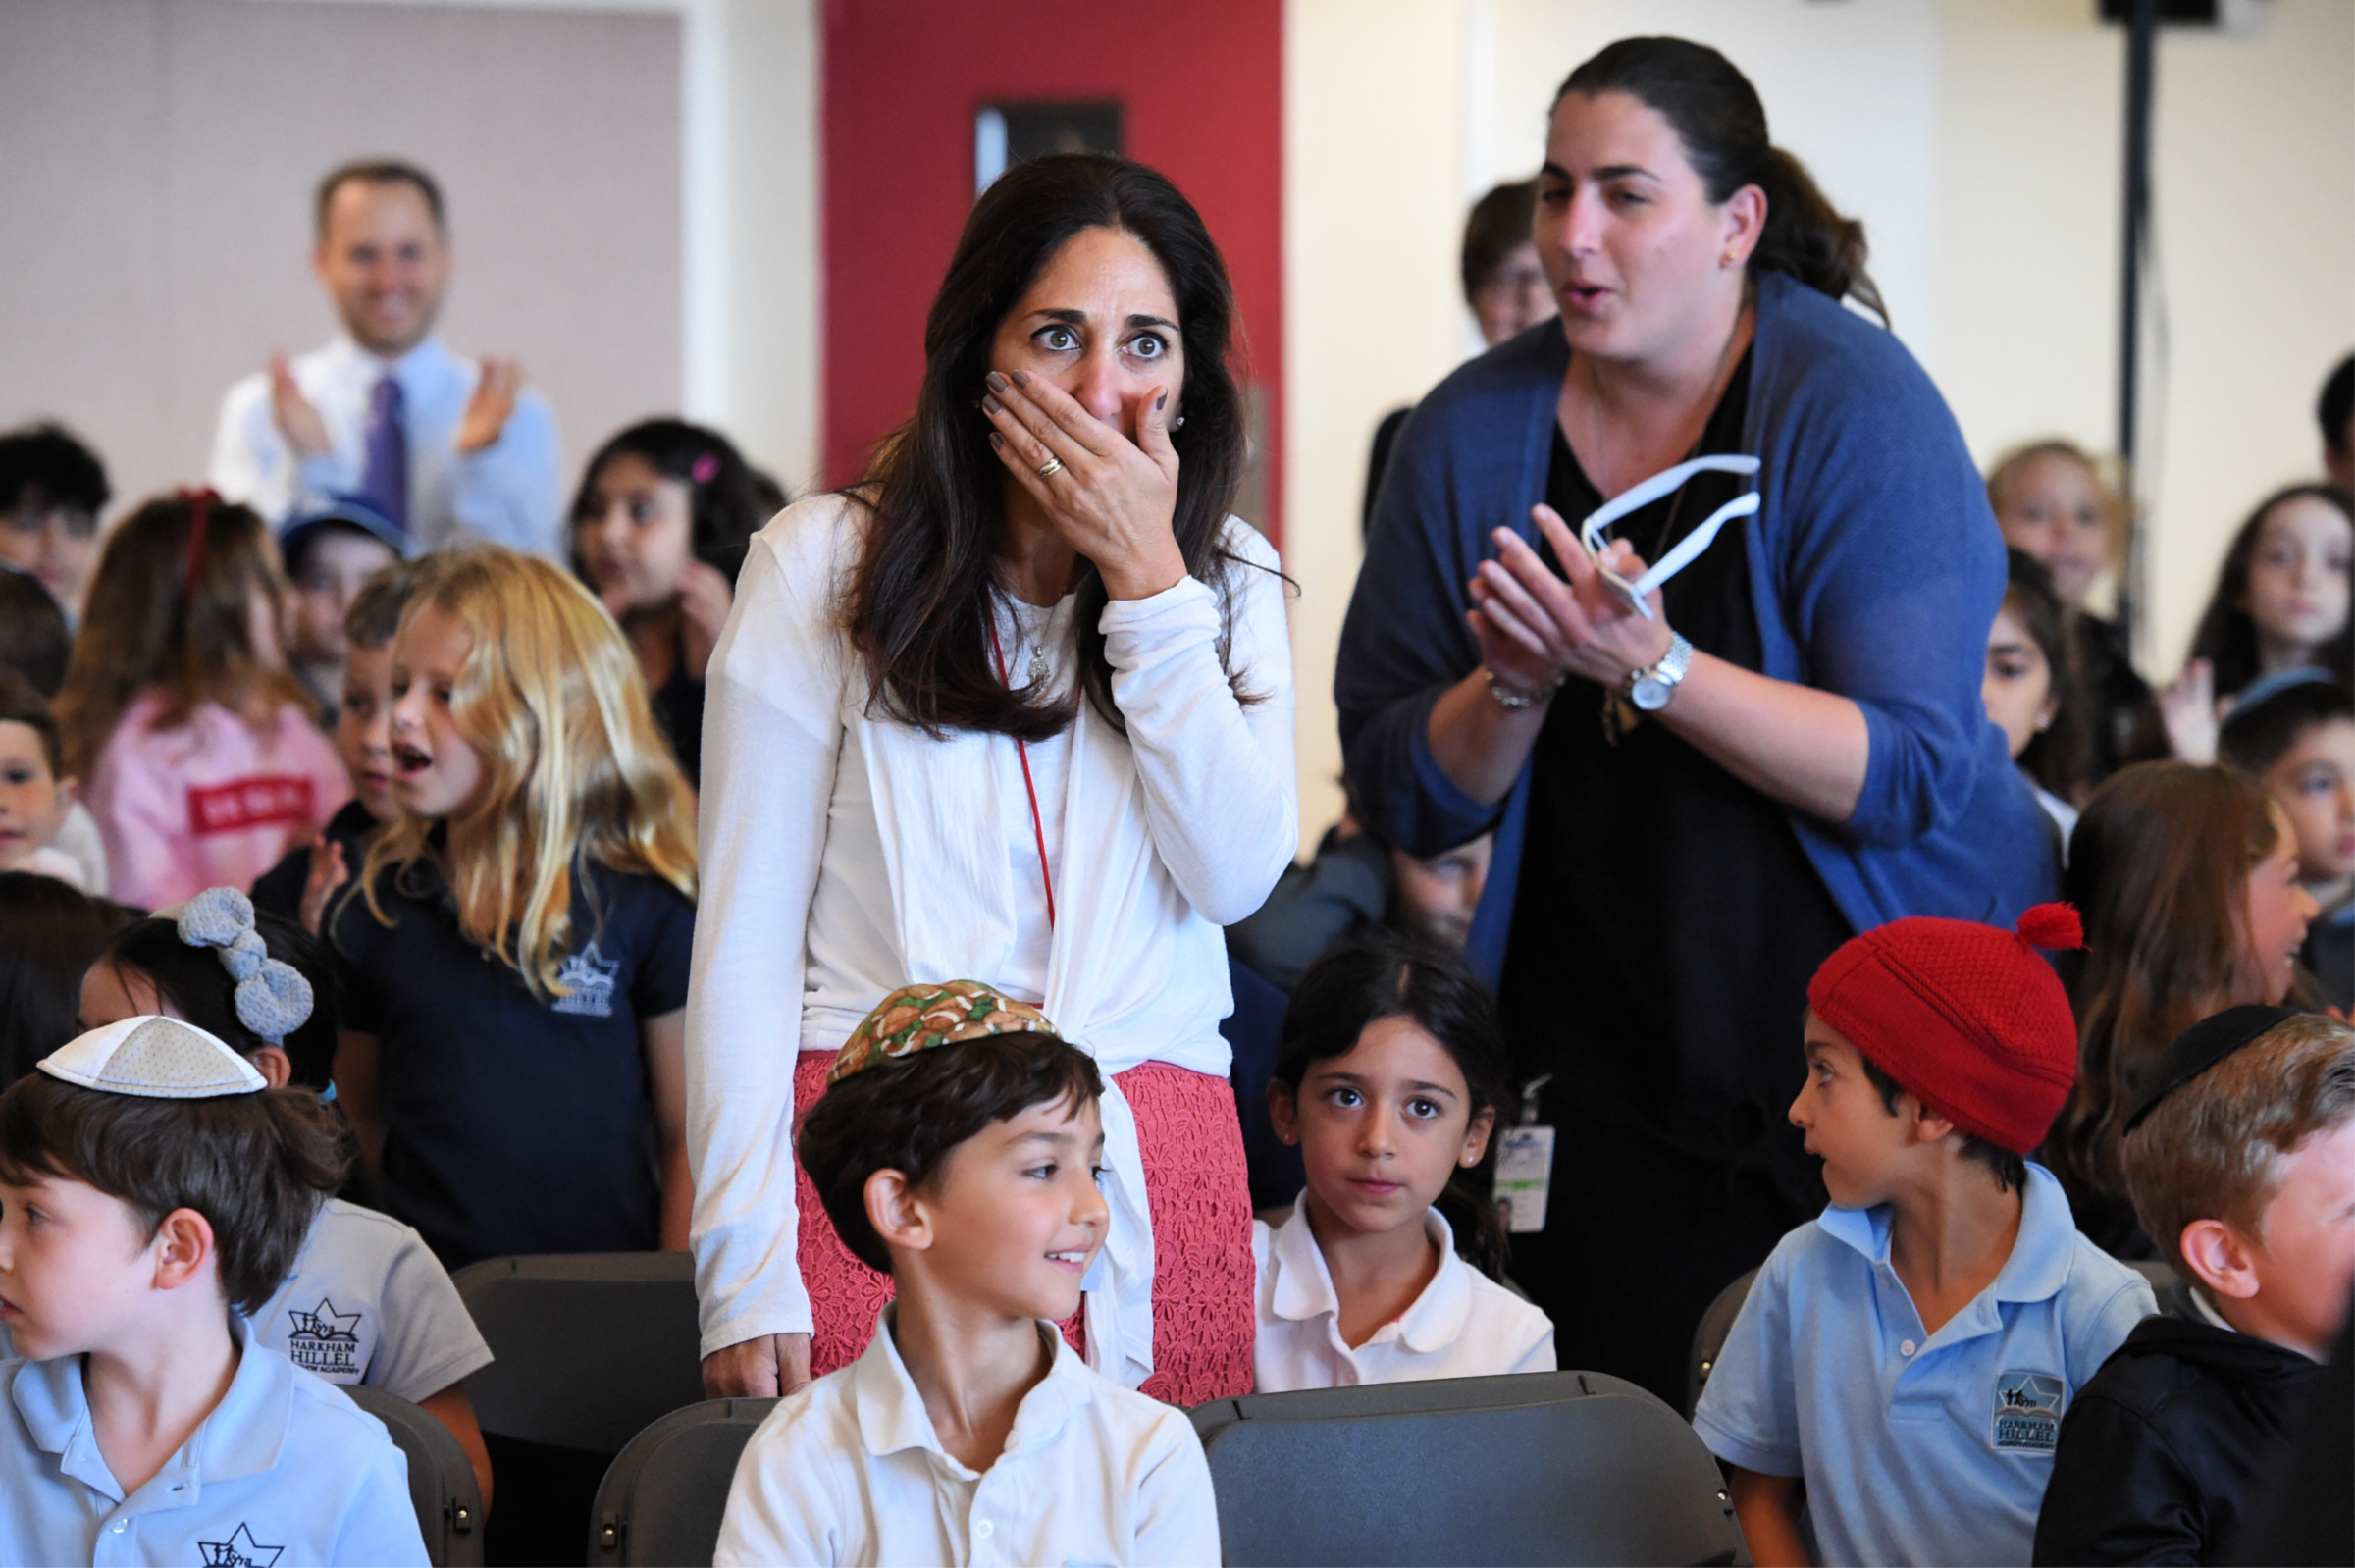 Florette Benhamou Notification Surprise! First-grade teacher Florette Benhamou is shocked to learn that she is the recipient of a 2018 Jewish Educator Award.